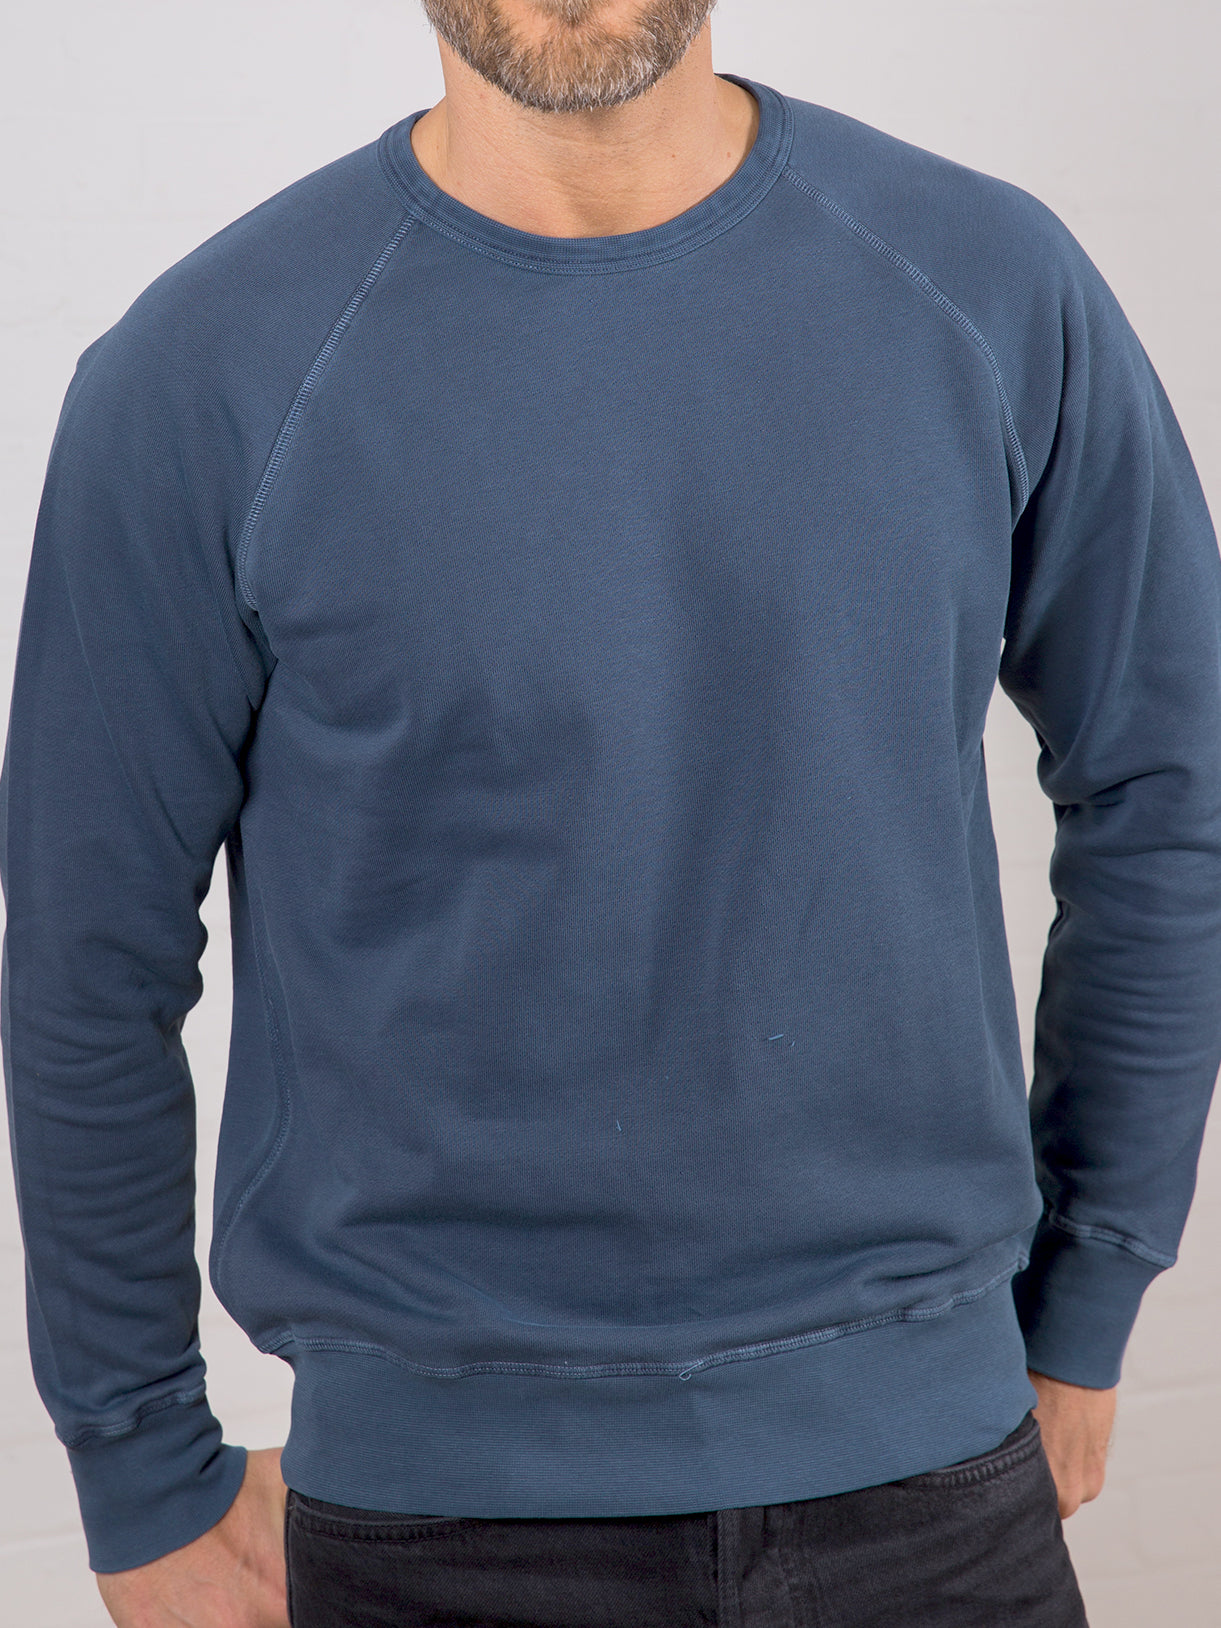 Men's Classic Sweatshirt Deep Navy